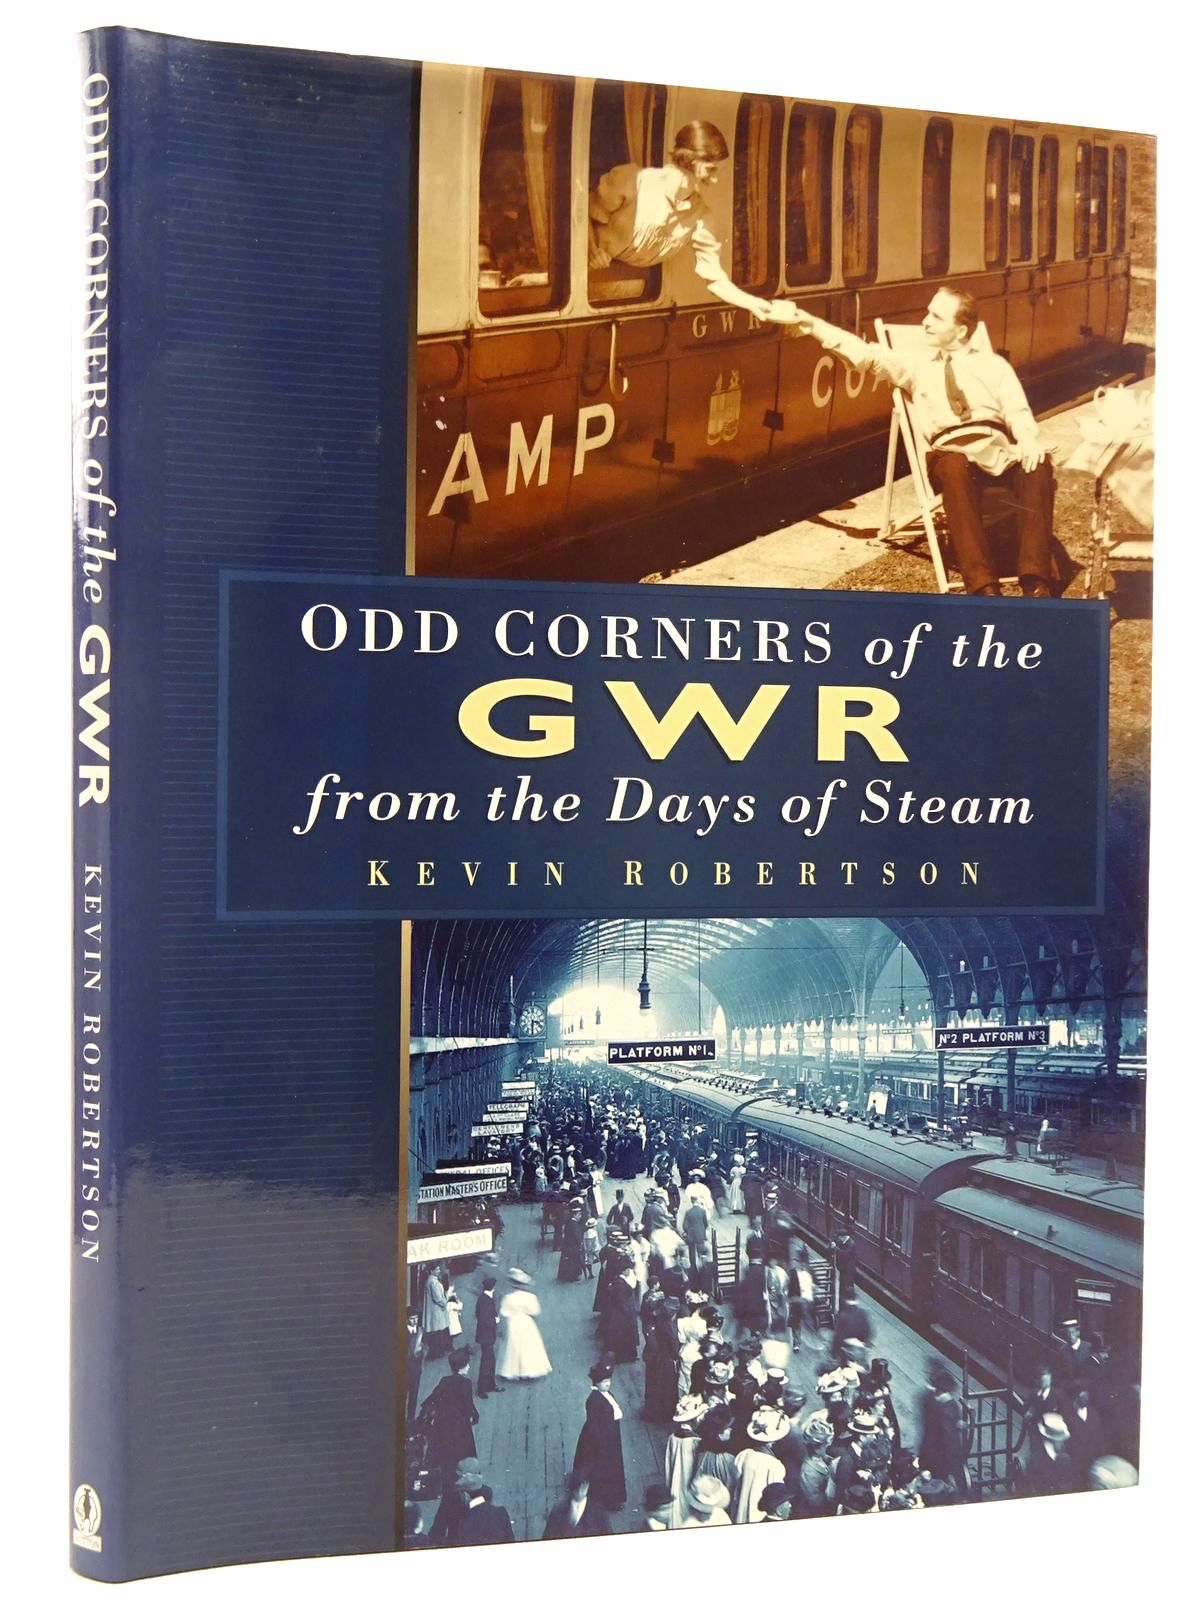 Photo of ODD CORNERS OF THE GWR FROM THE DAYS OF STEAM written by Robertson, Kevin published by Sutton Publishing (STOCK CODE: 2128809)  for sale by Stella & Rose's Books